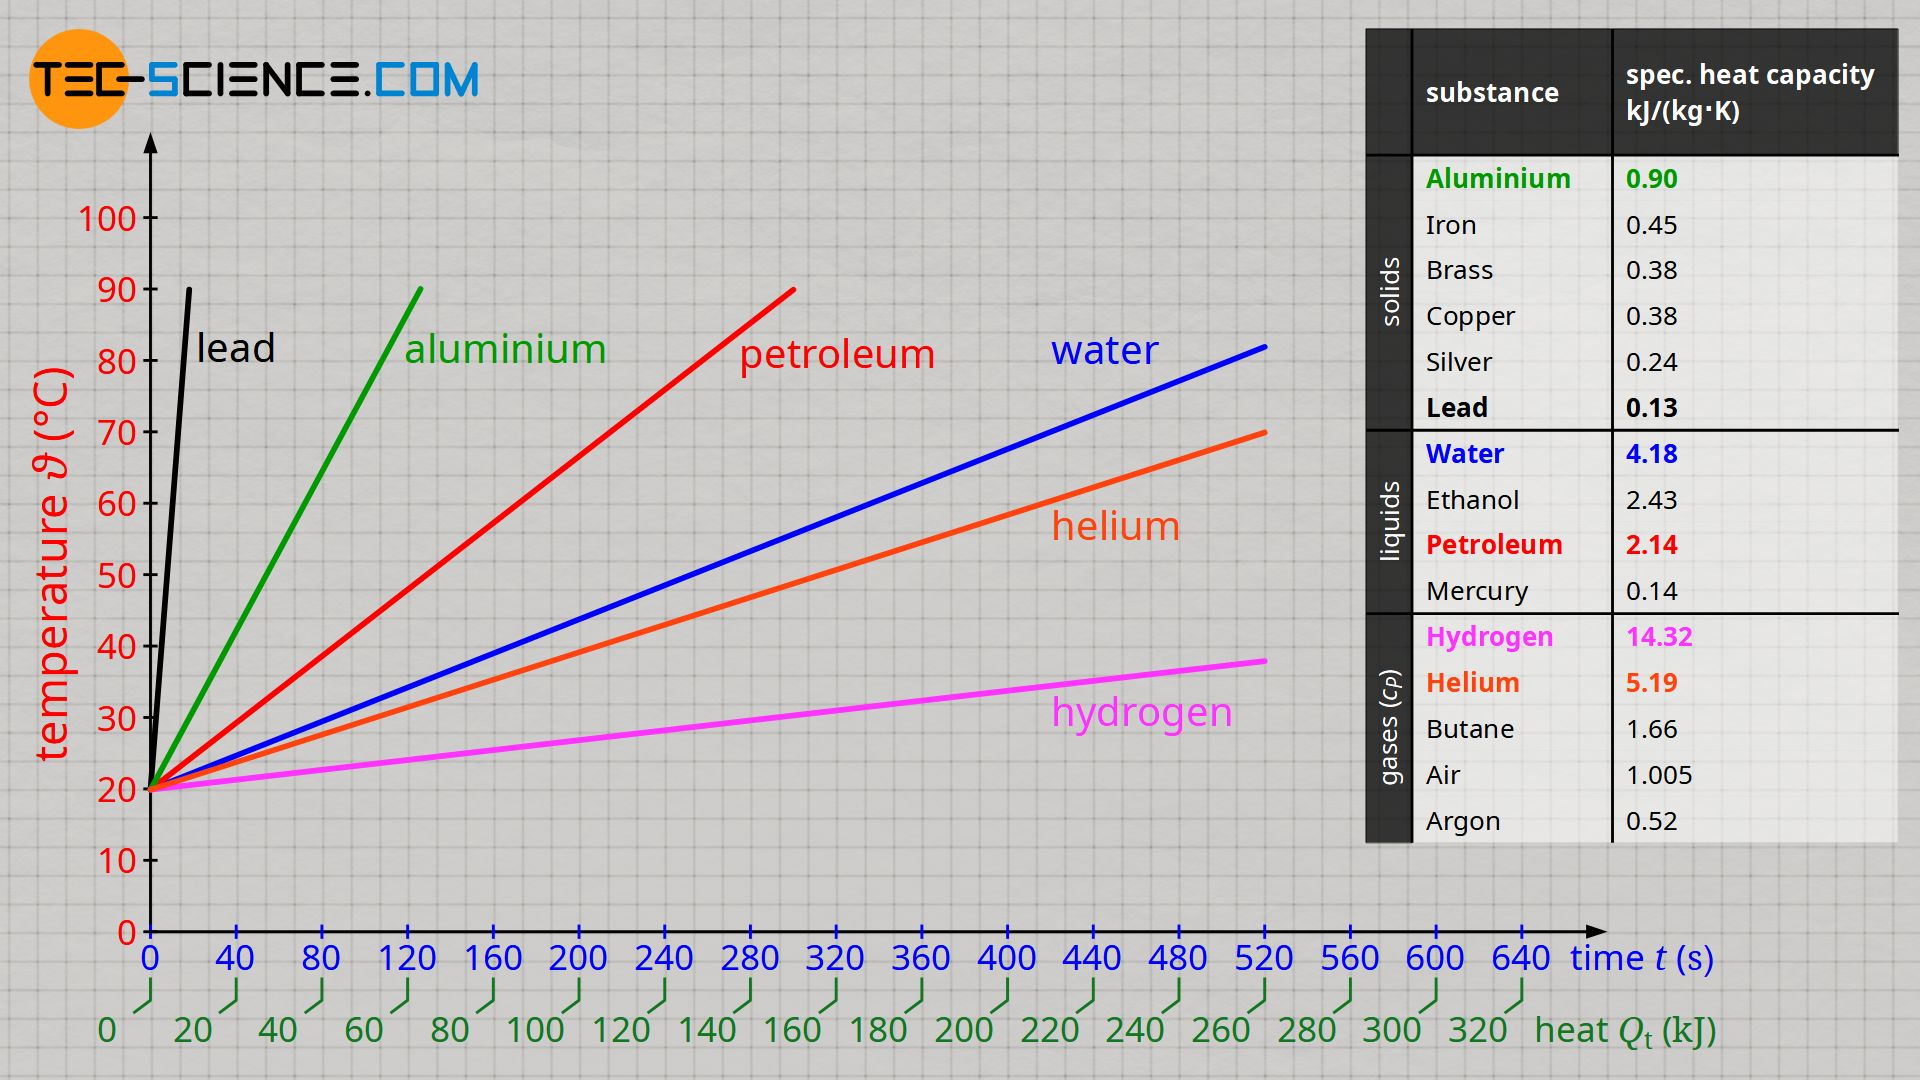 Heat capacity of selected substances